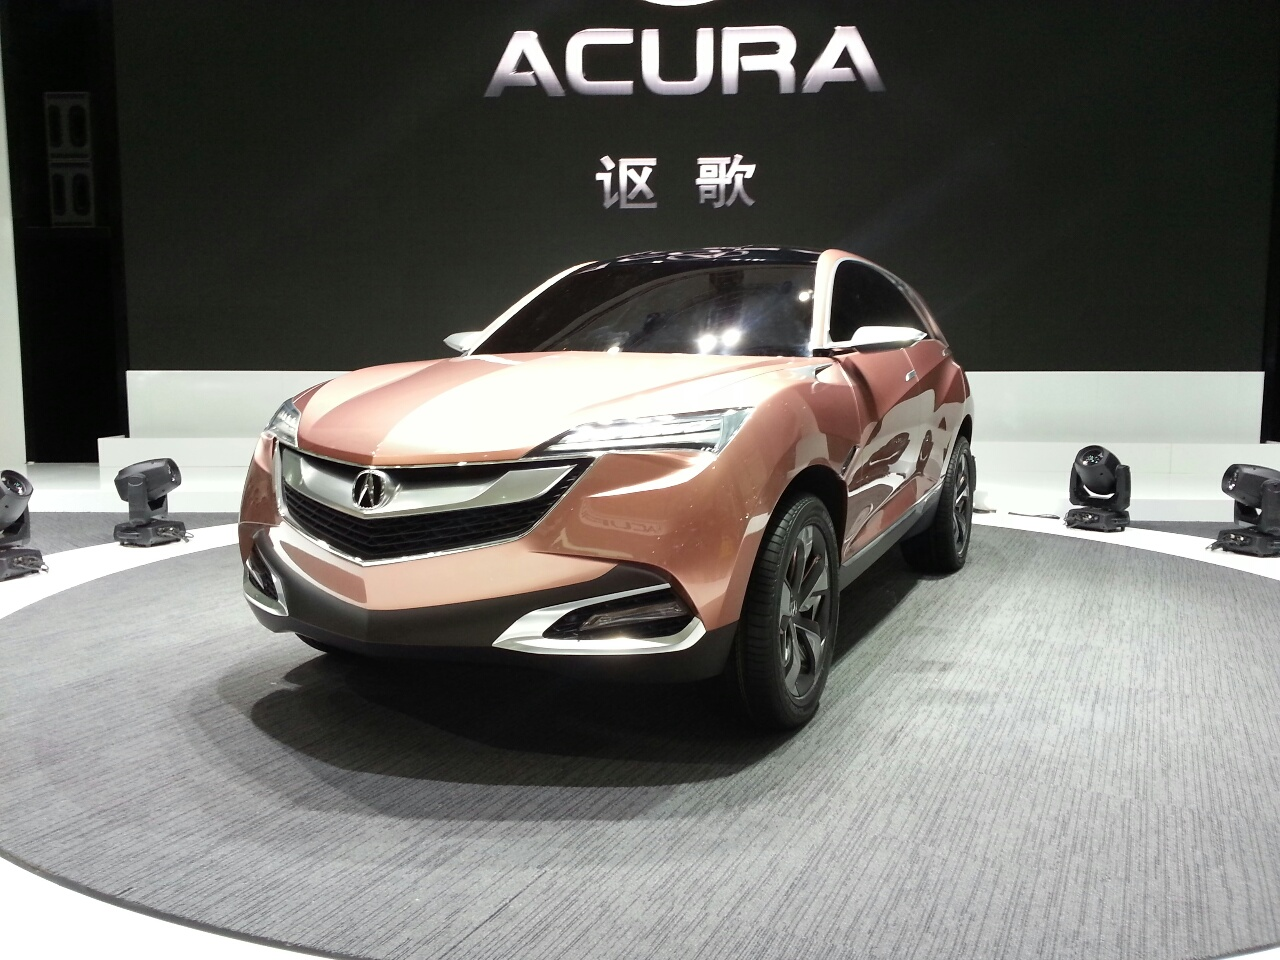 2019 Acura SUV X Concept photo - 1